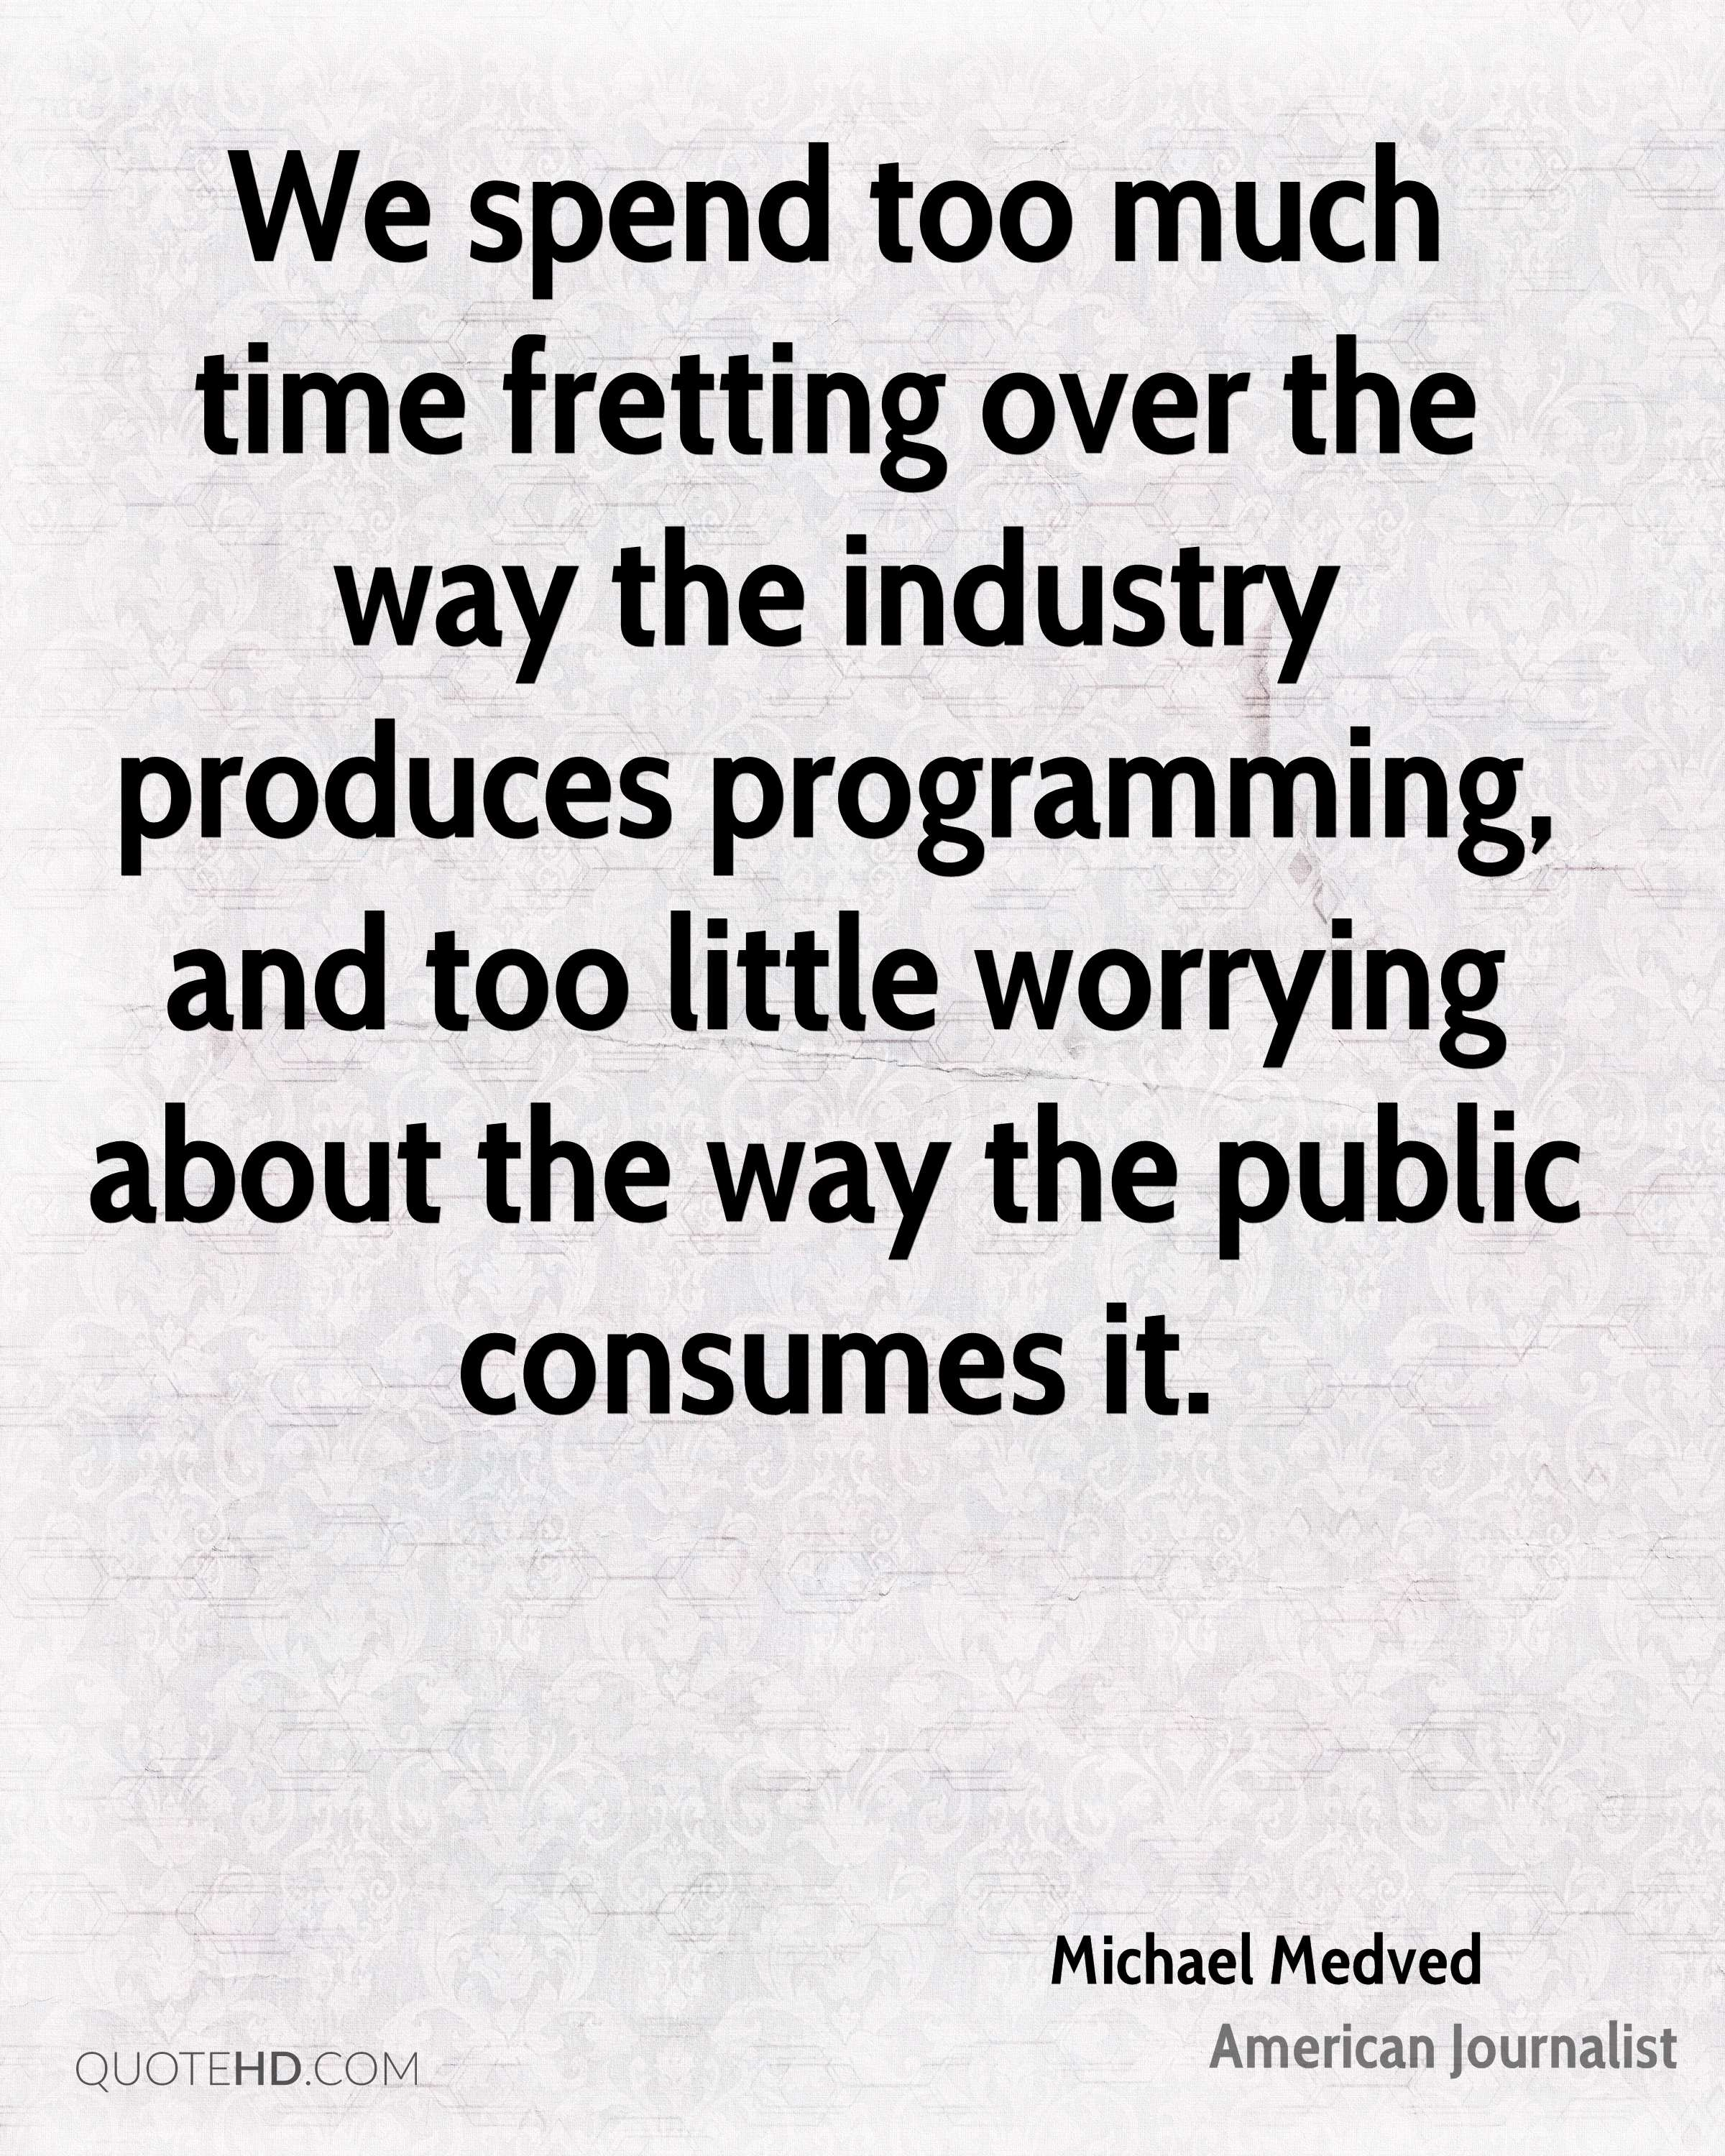 We spend too much time fretting over the way the industry produces programming, and too little worrying about the way the public consumes it.